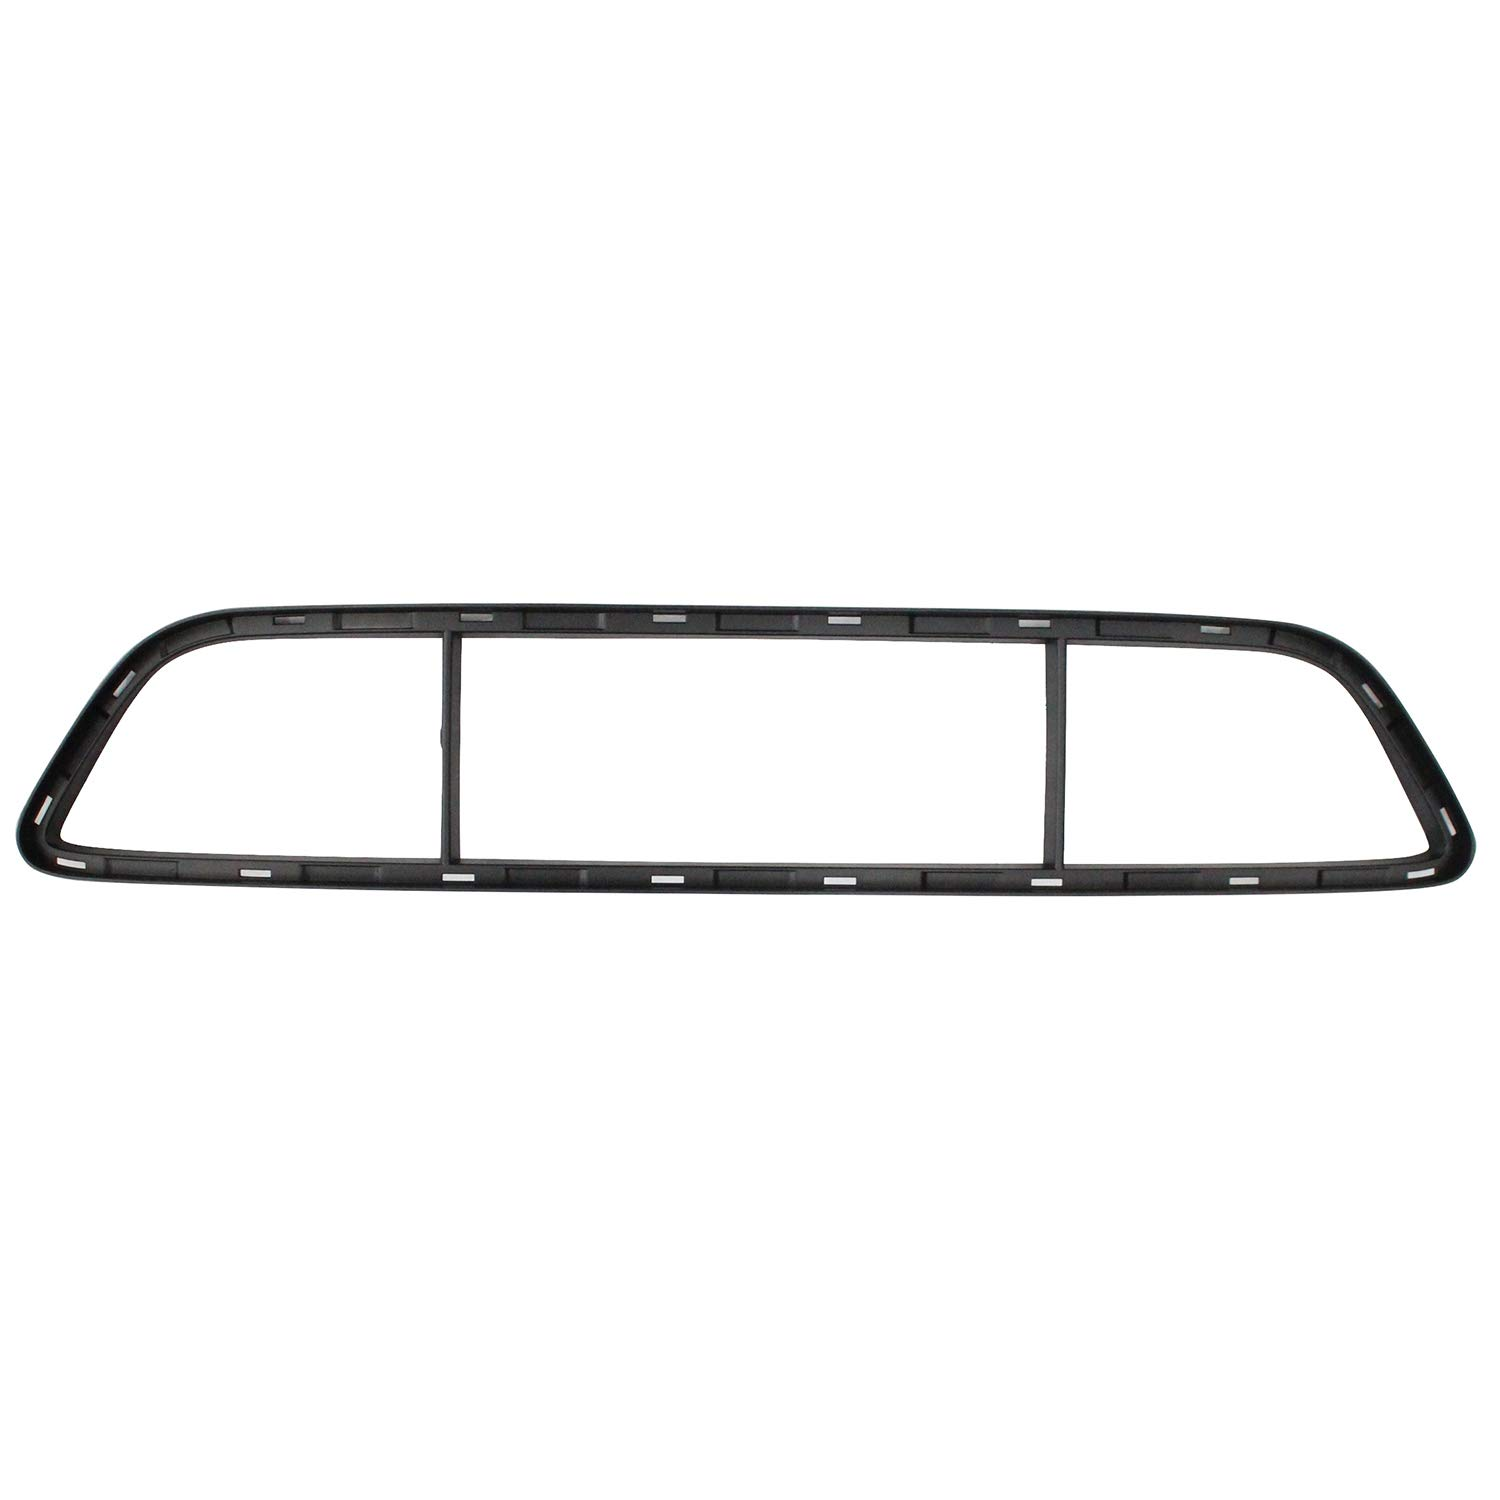 No variation Multiple Manufactures PO1037100 Standard Bumper Cover Grille Shell